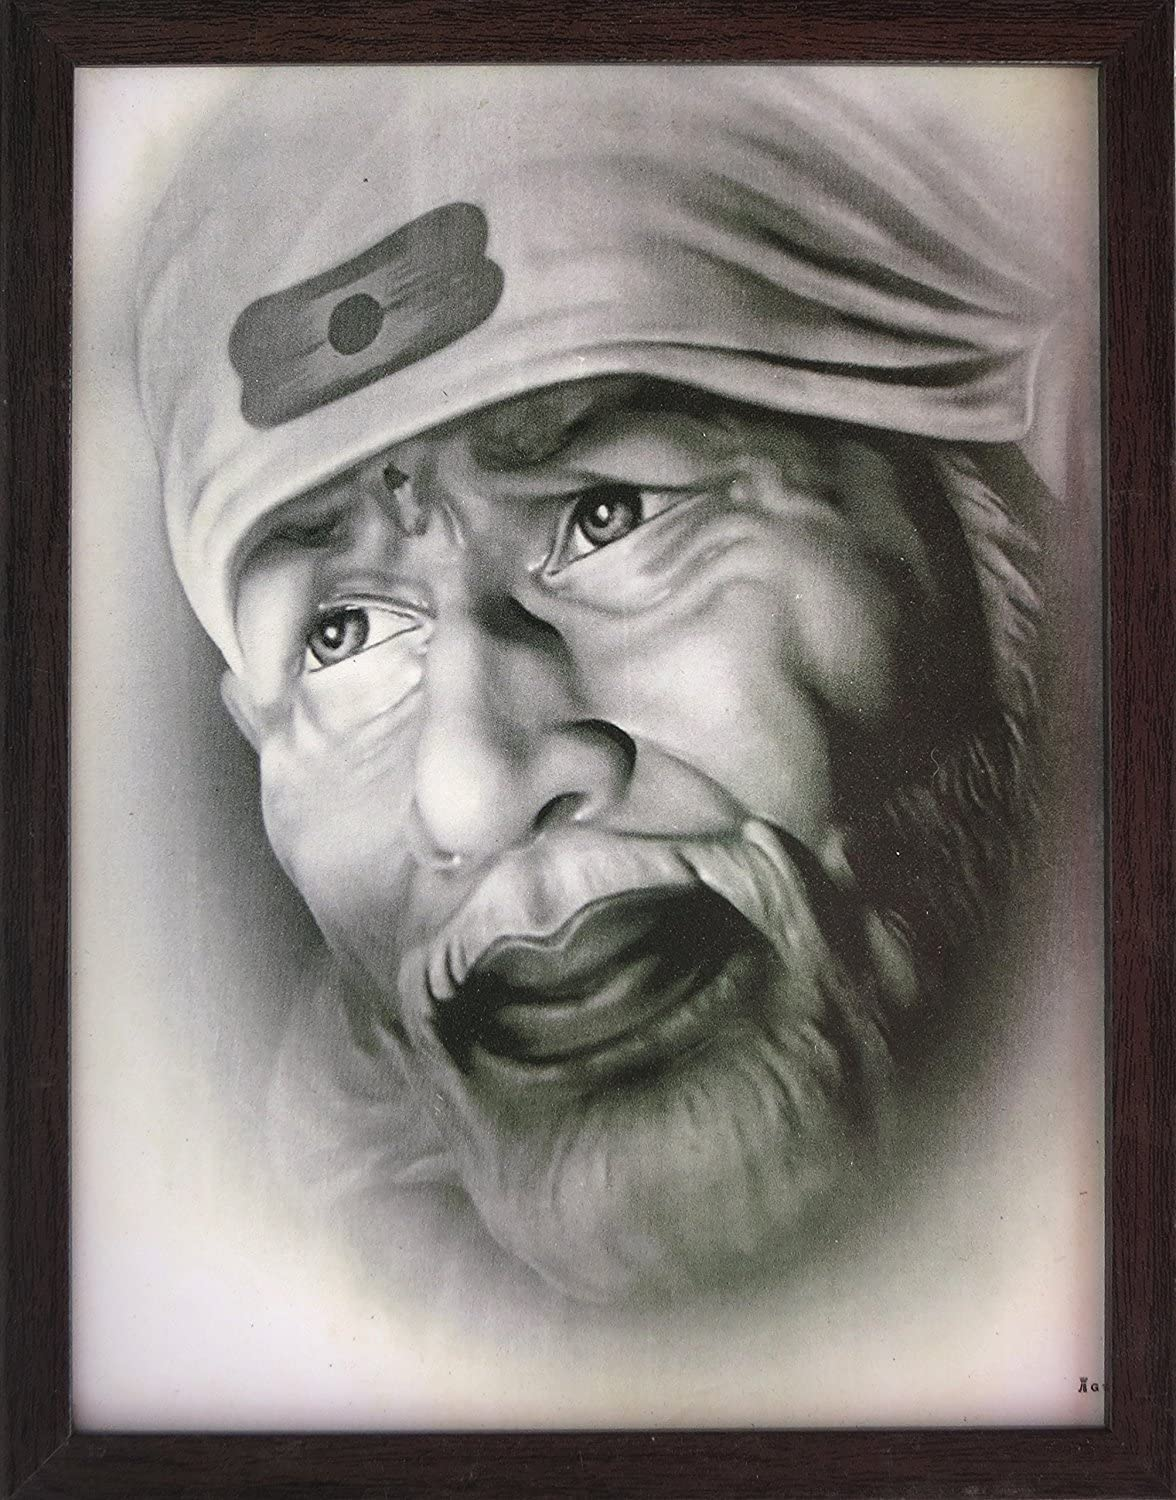 Sai Baba Looking with White Beard in This White Picture, Sai Baba Poster Picture with Frame, Must for Home Decor/ Offices and Gift Purpose.